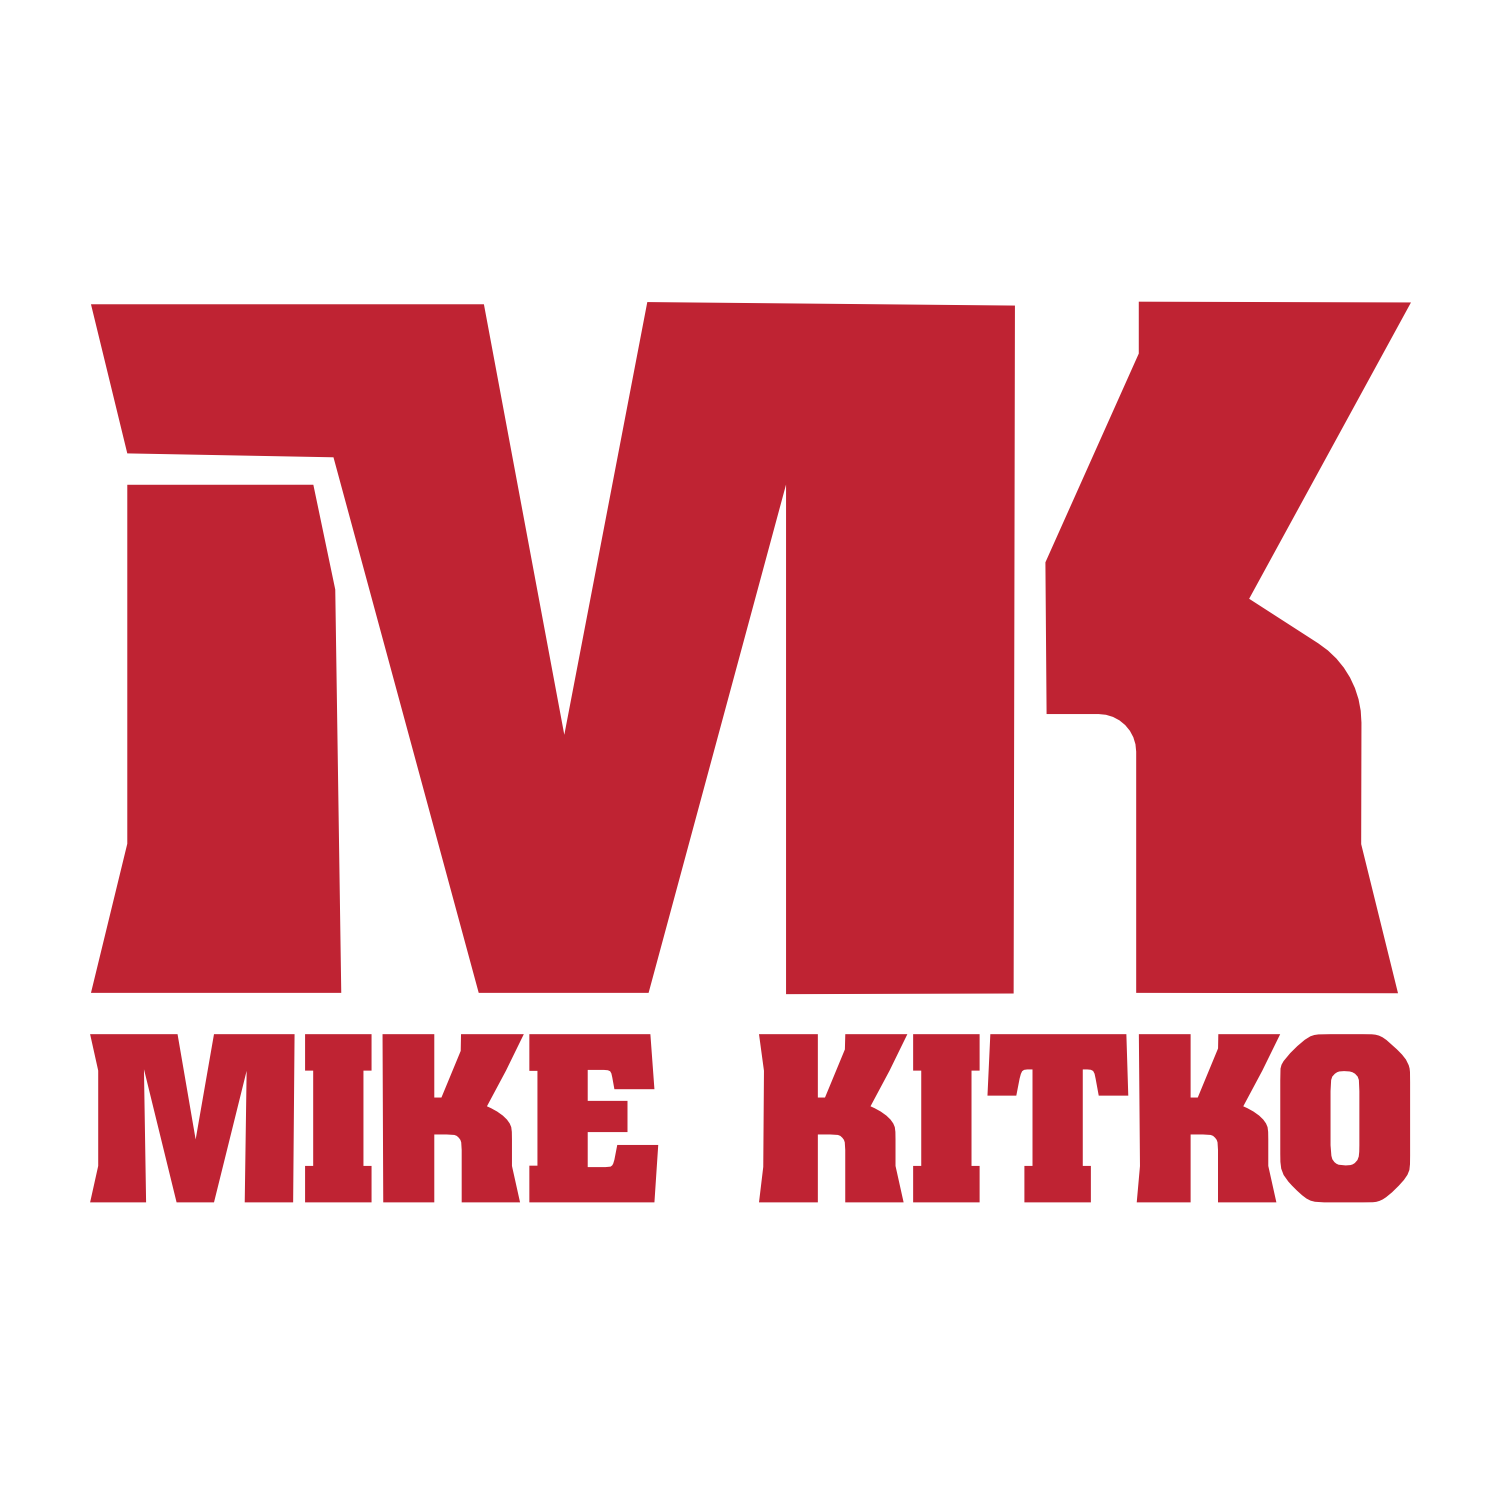 Mike Kitko, Executive Self-Mastery Coach